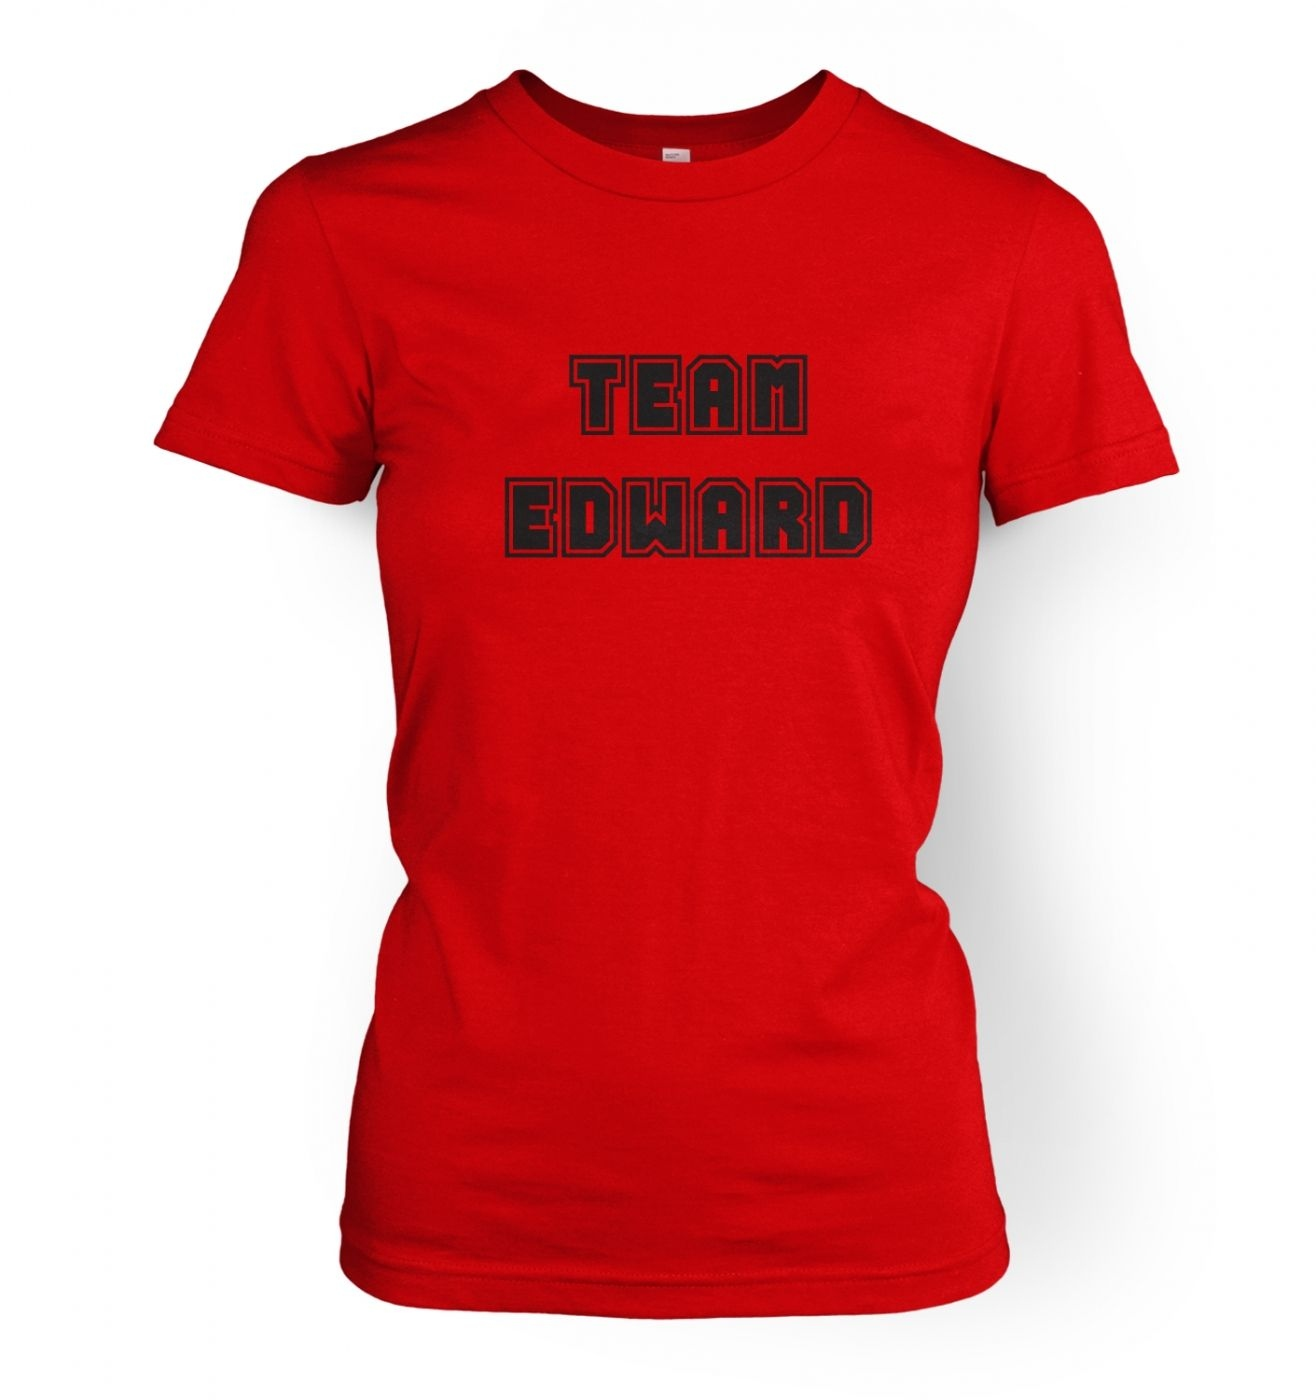 Varsity Style Team Edward Women's t-shirt - Inspired by Twilight